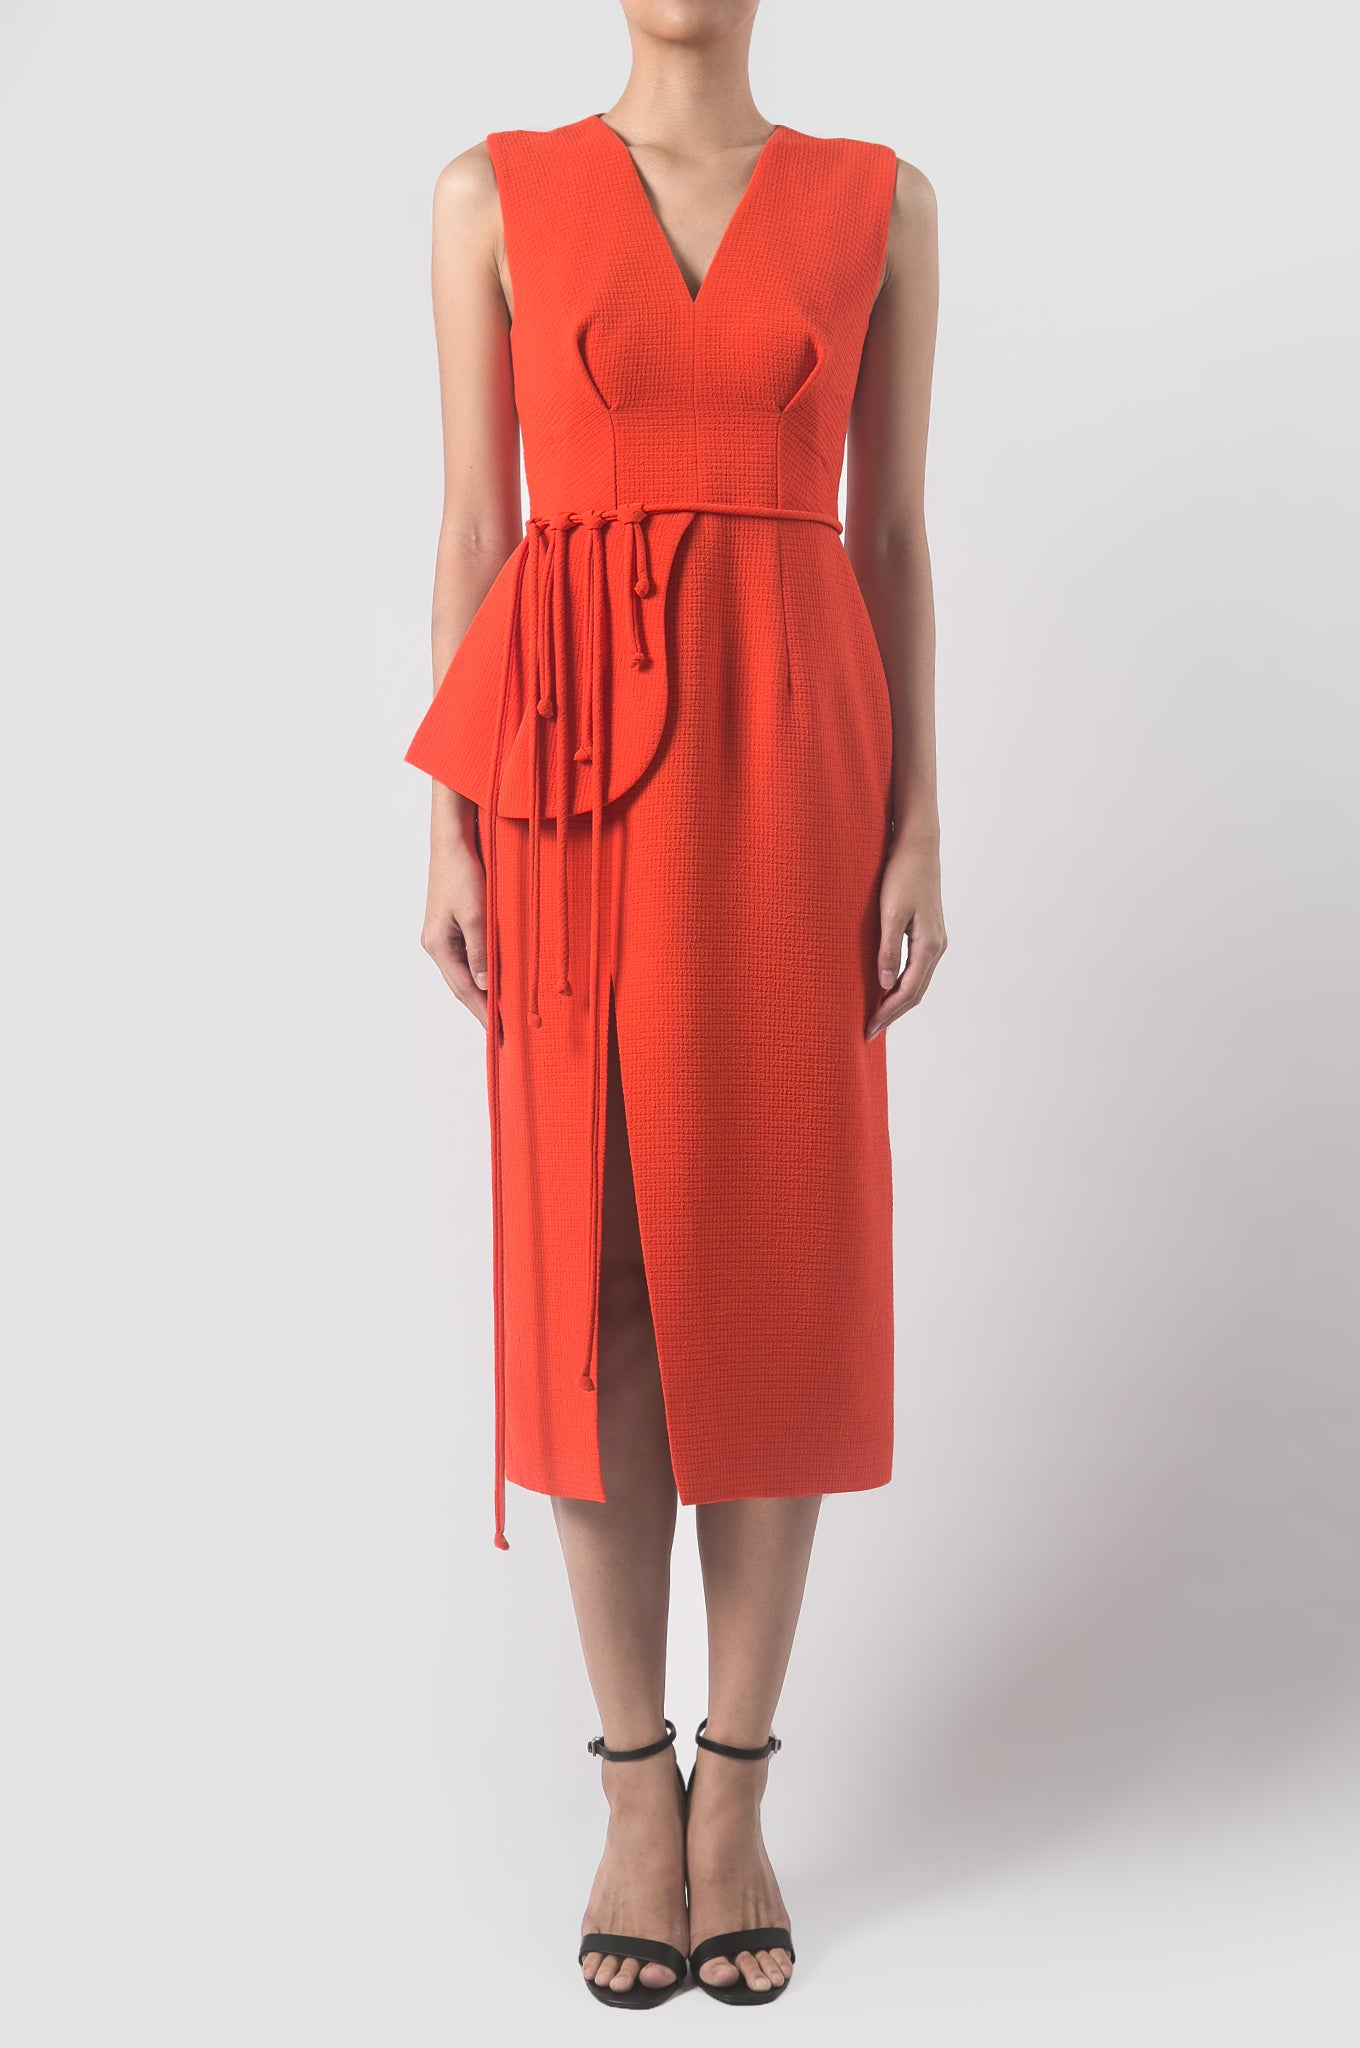 Cumin Orange Resin Dress